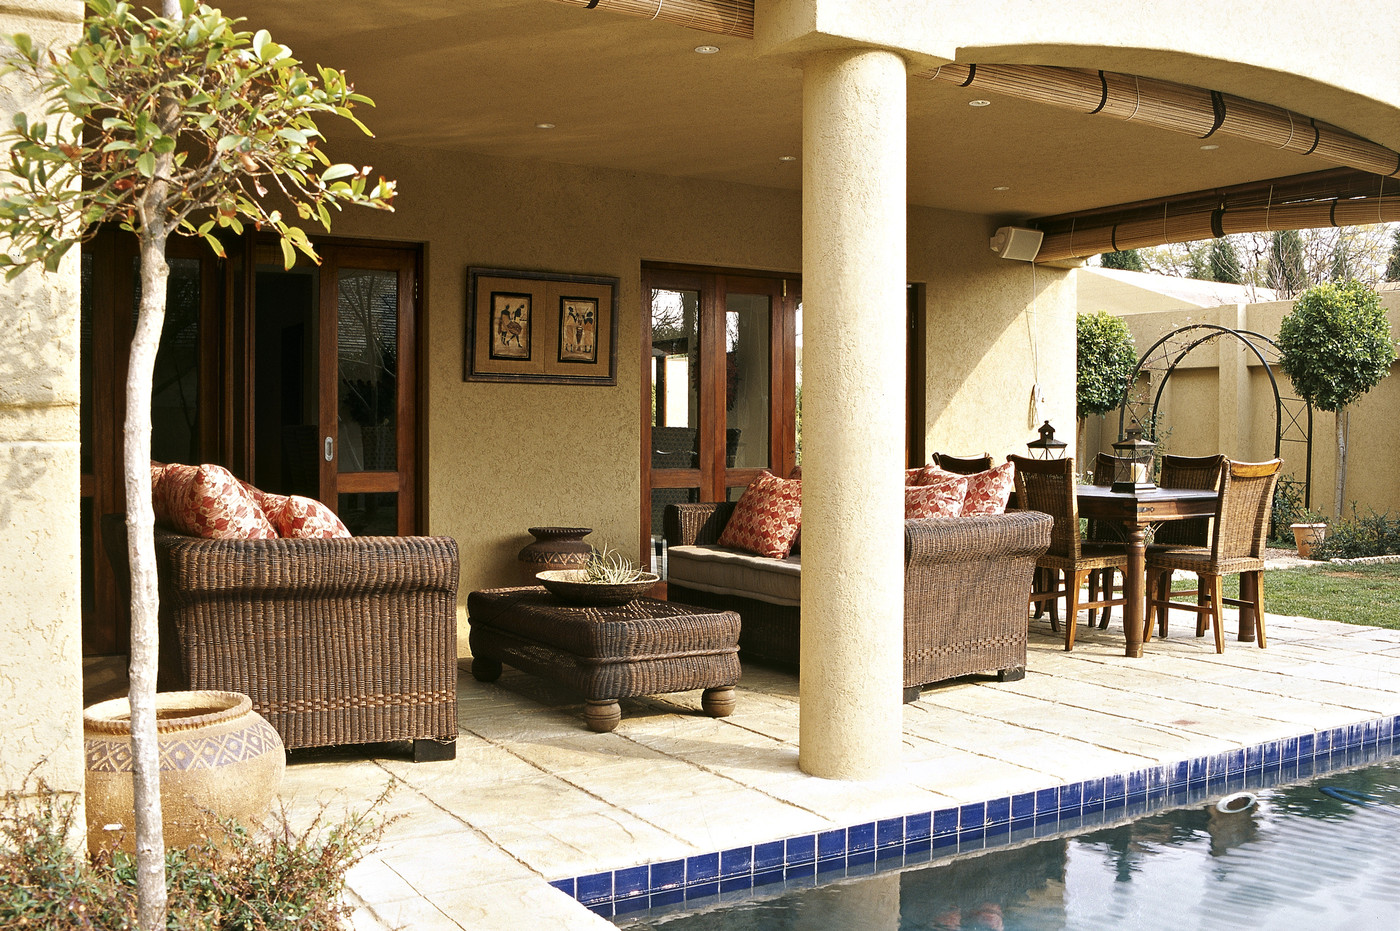 Contemporary mediterranean patio outdoor patio design ideas lonny - Mediterranean backyard designs ...